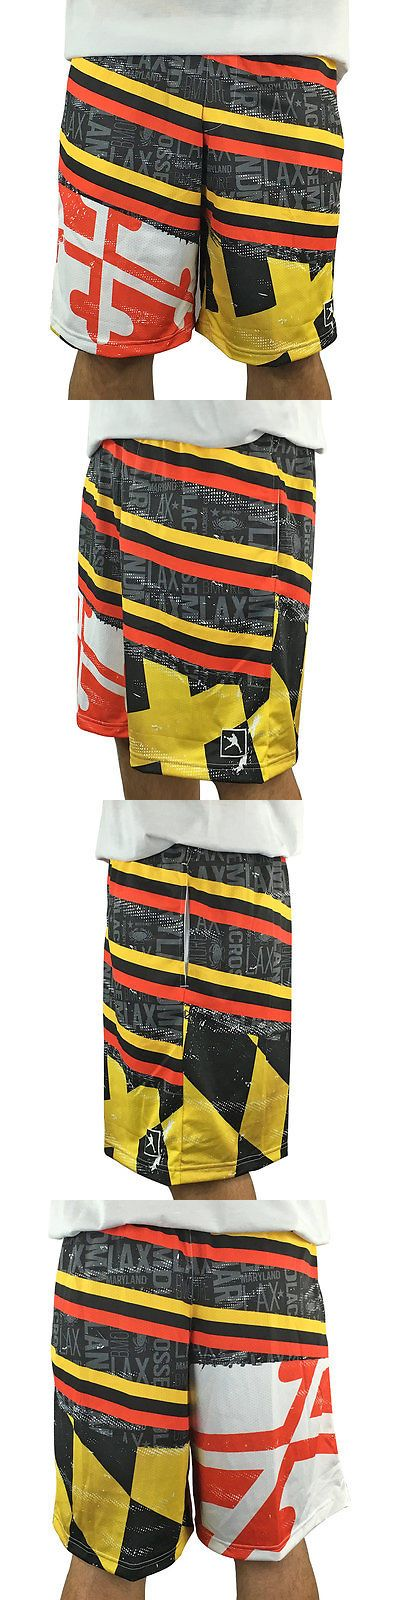 Clothing 159152: Maryland Flag Lacrosse Shorts -Youth-Small BUY IT NOW ONLY: $37.99